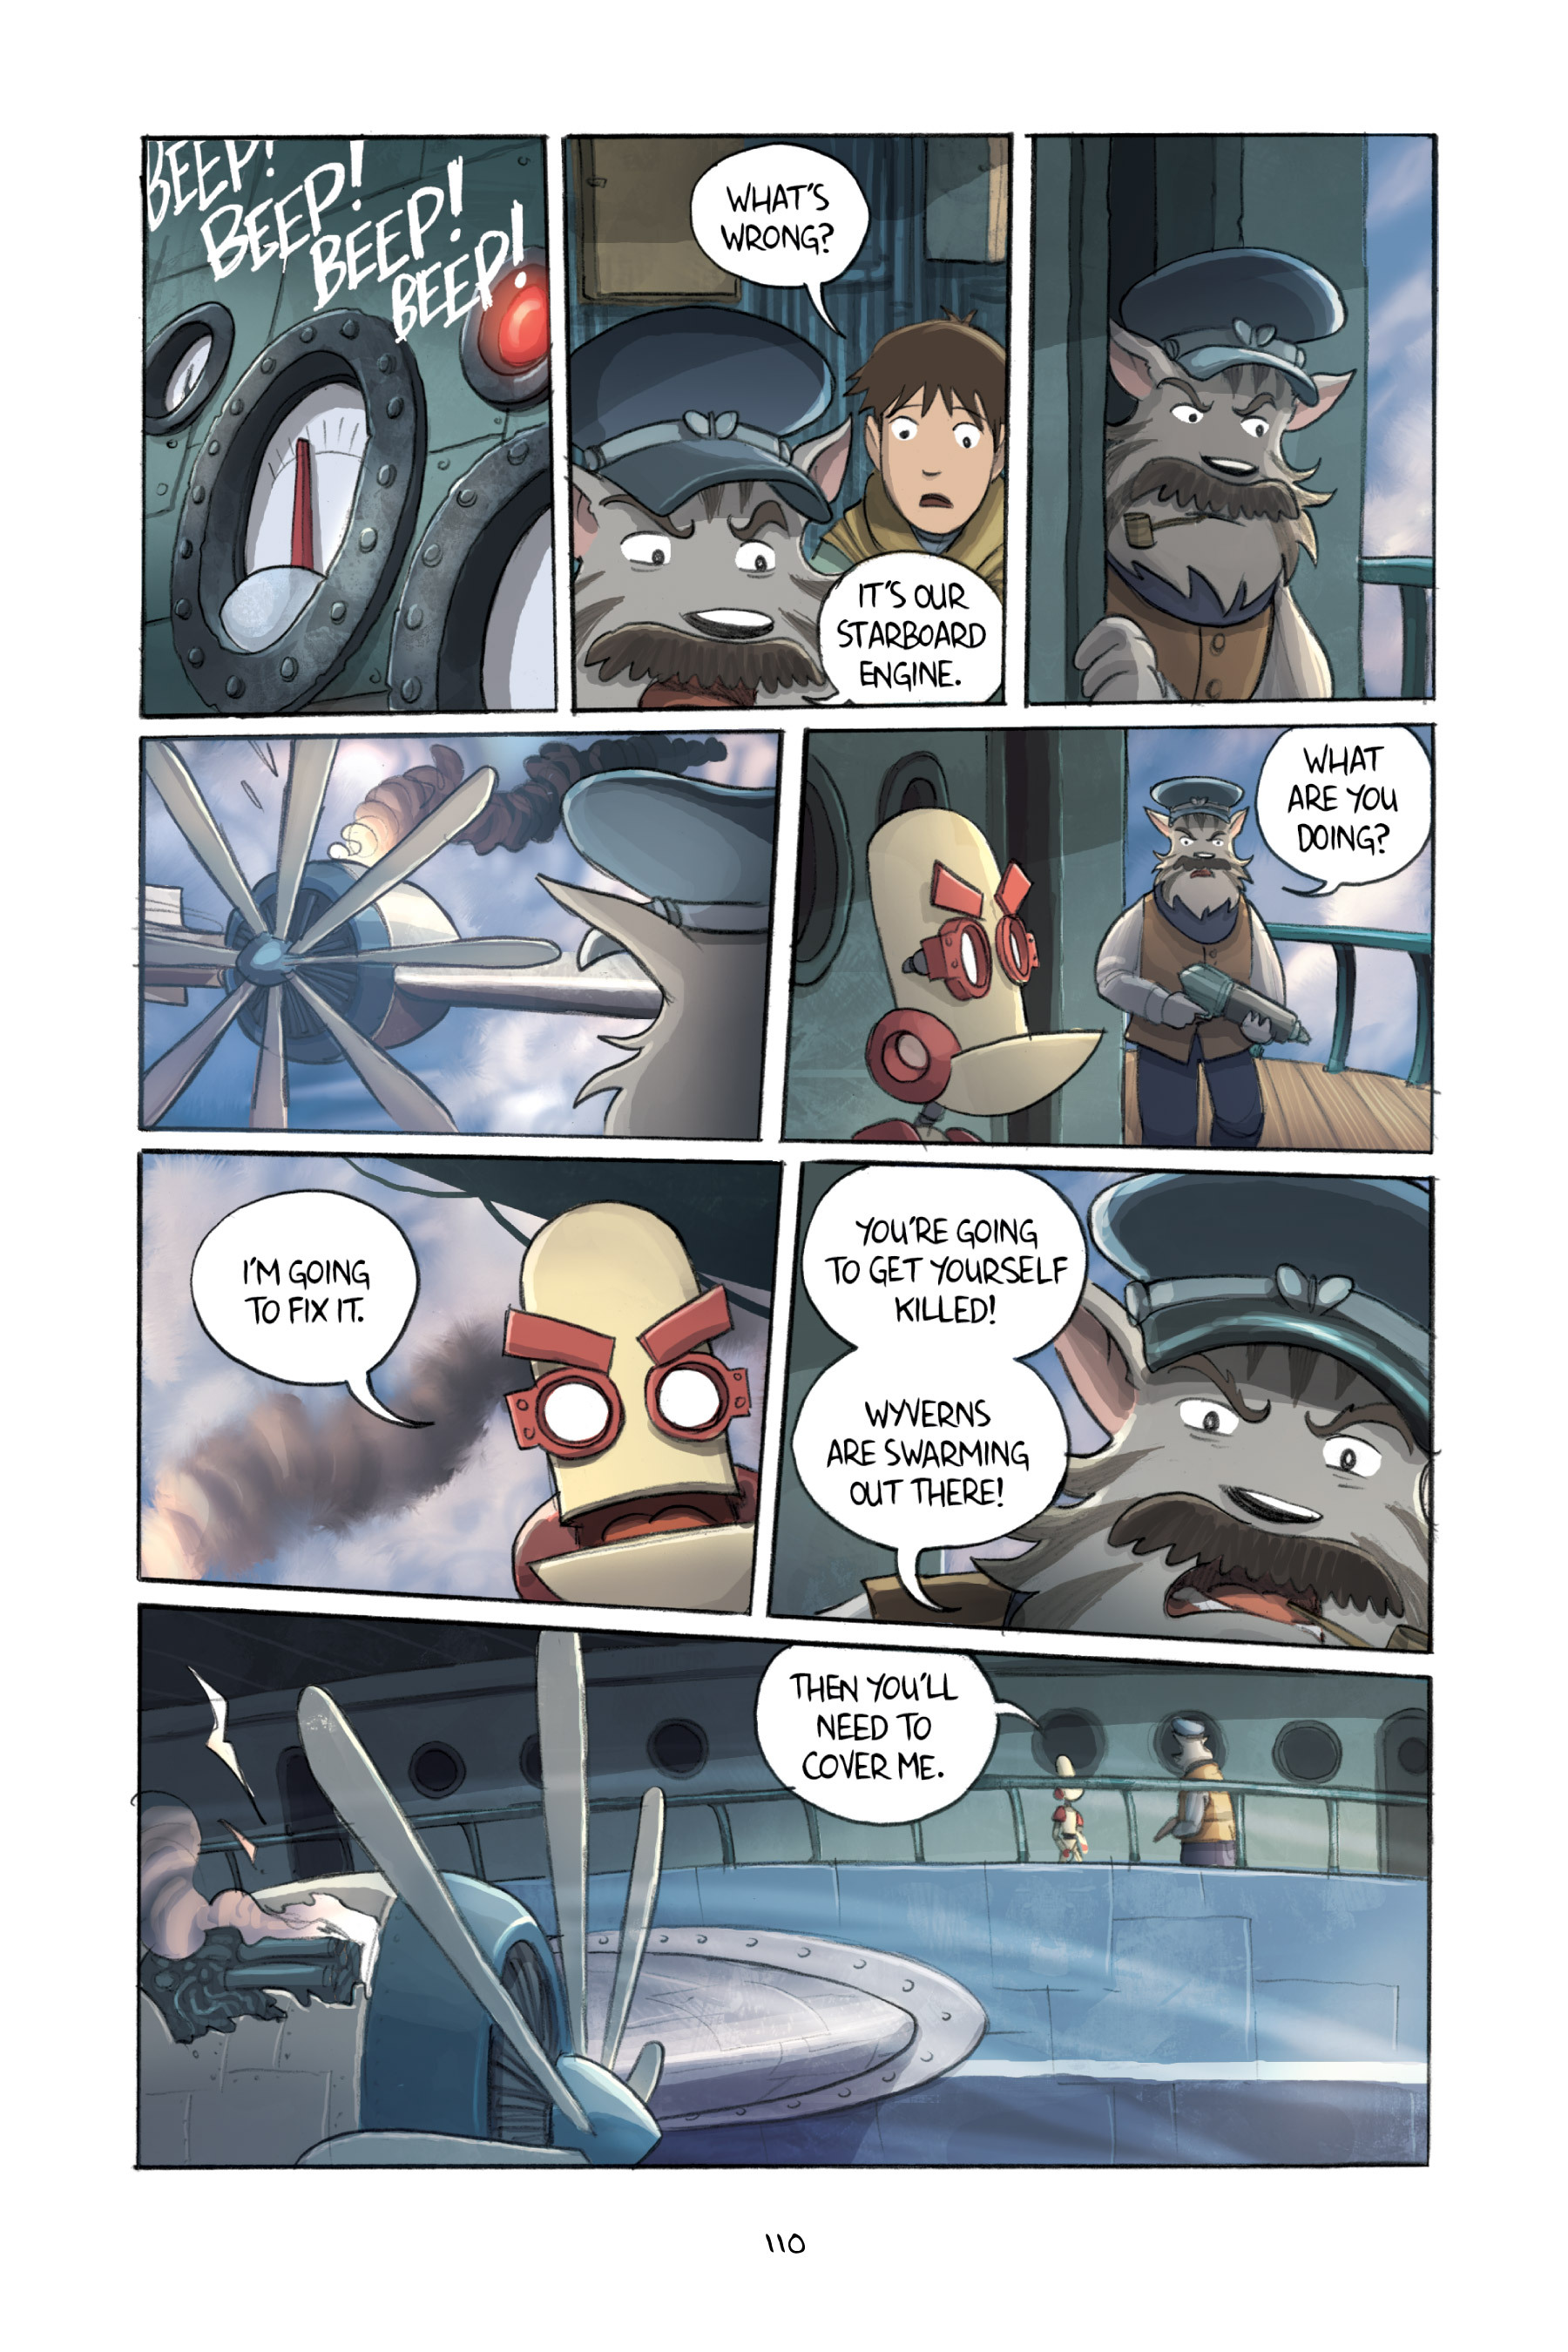 Read online Amulet comic -  Issue #3 - 108